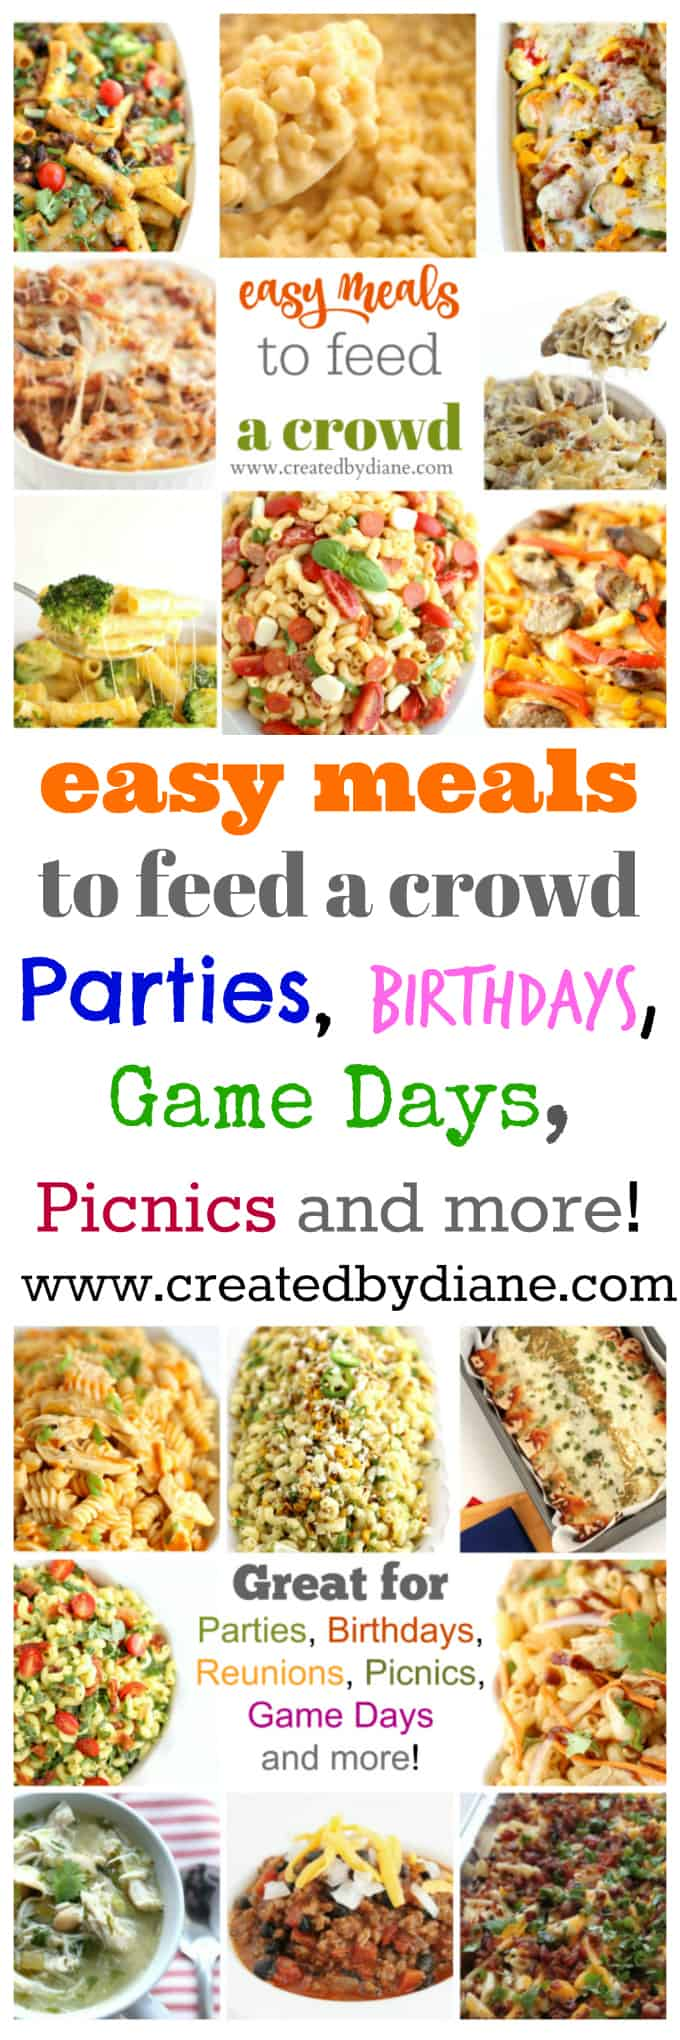 easy meals to feed a crowd, parties, birthdays, game days, picnics, and more www.createdbydiane.com